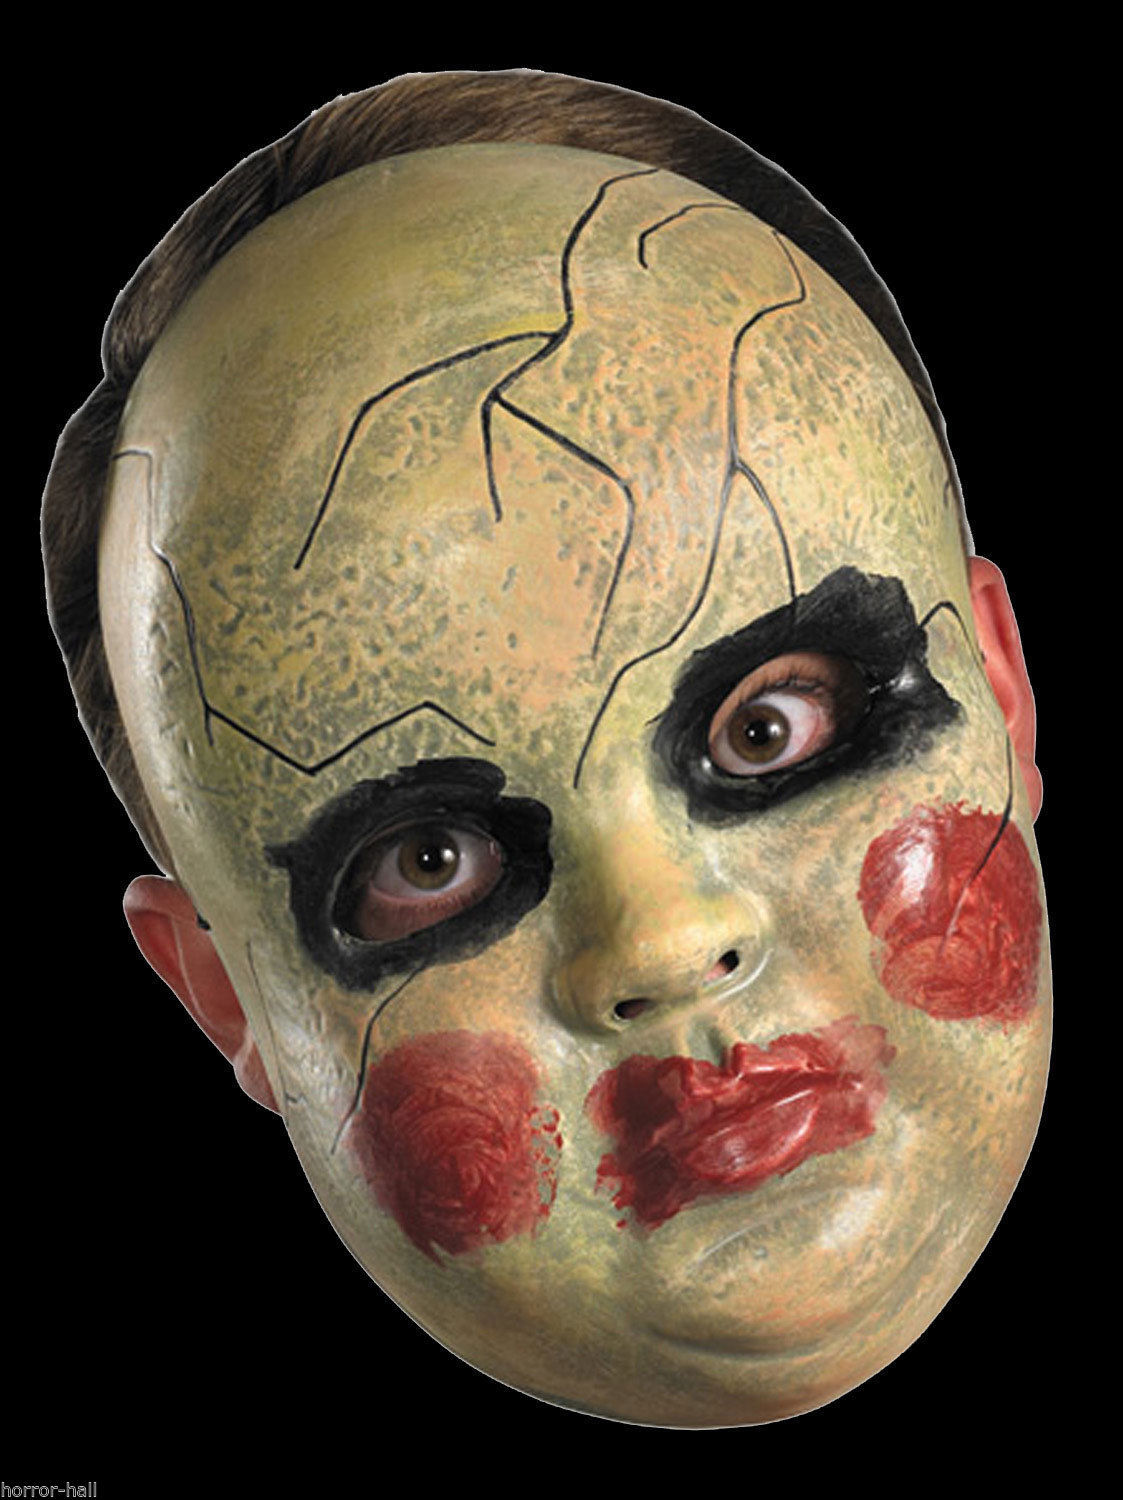 Creepy Horror Prop BABY DOLL FACE MASK Spooky Halloween ...